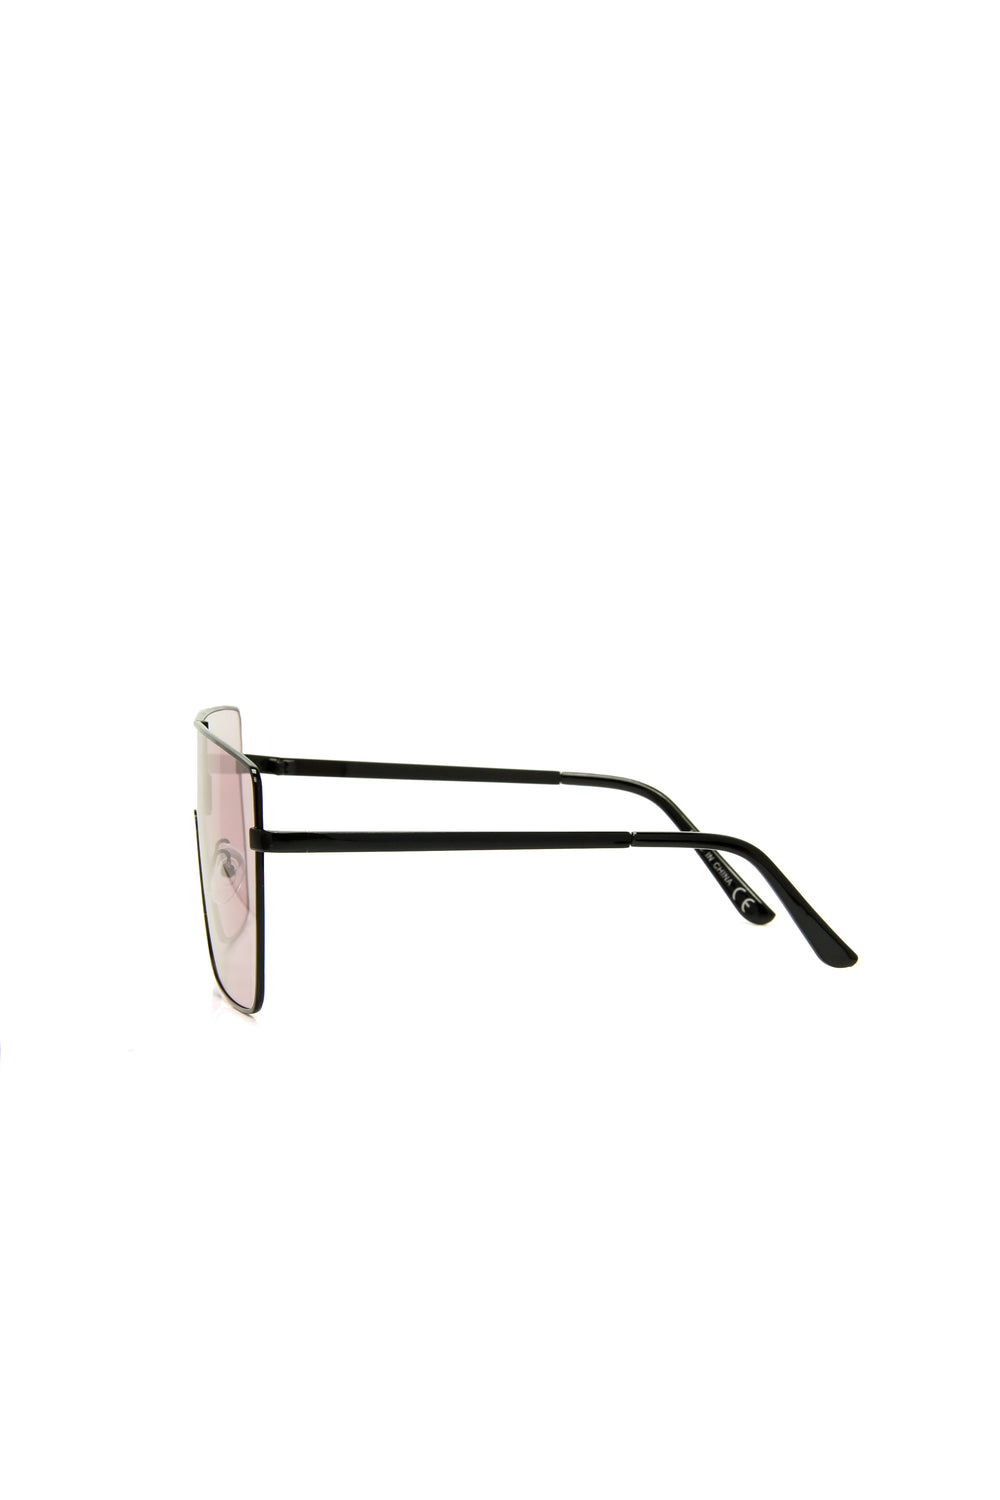 Lose Your Cool Sunglasses - Black